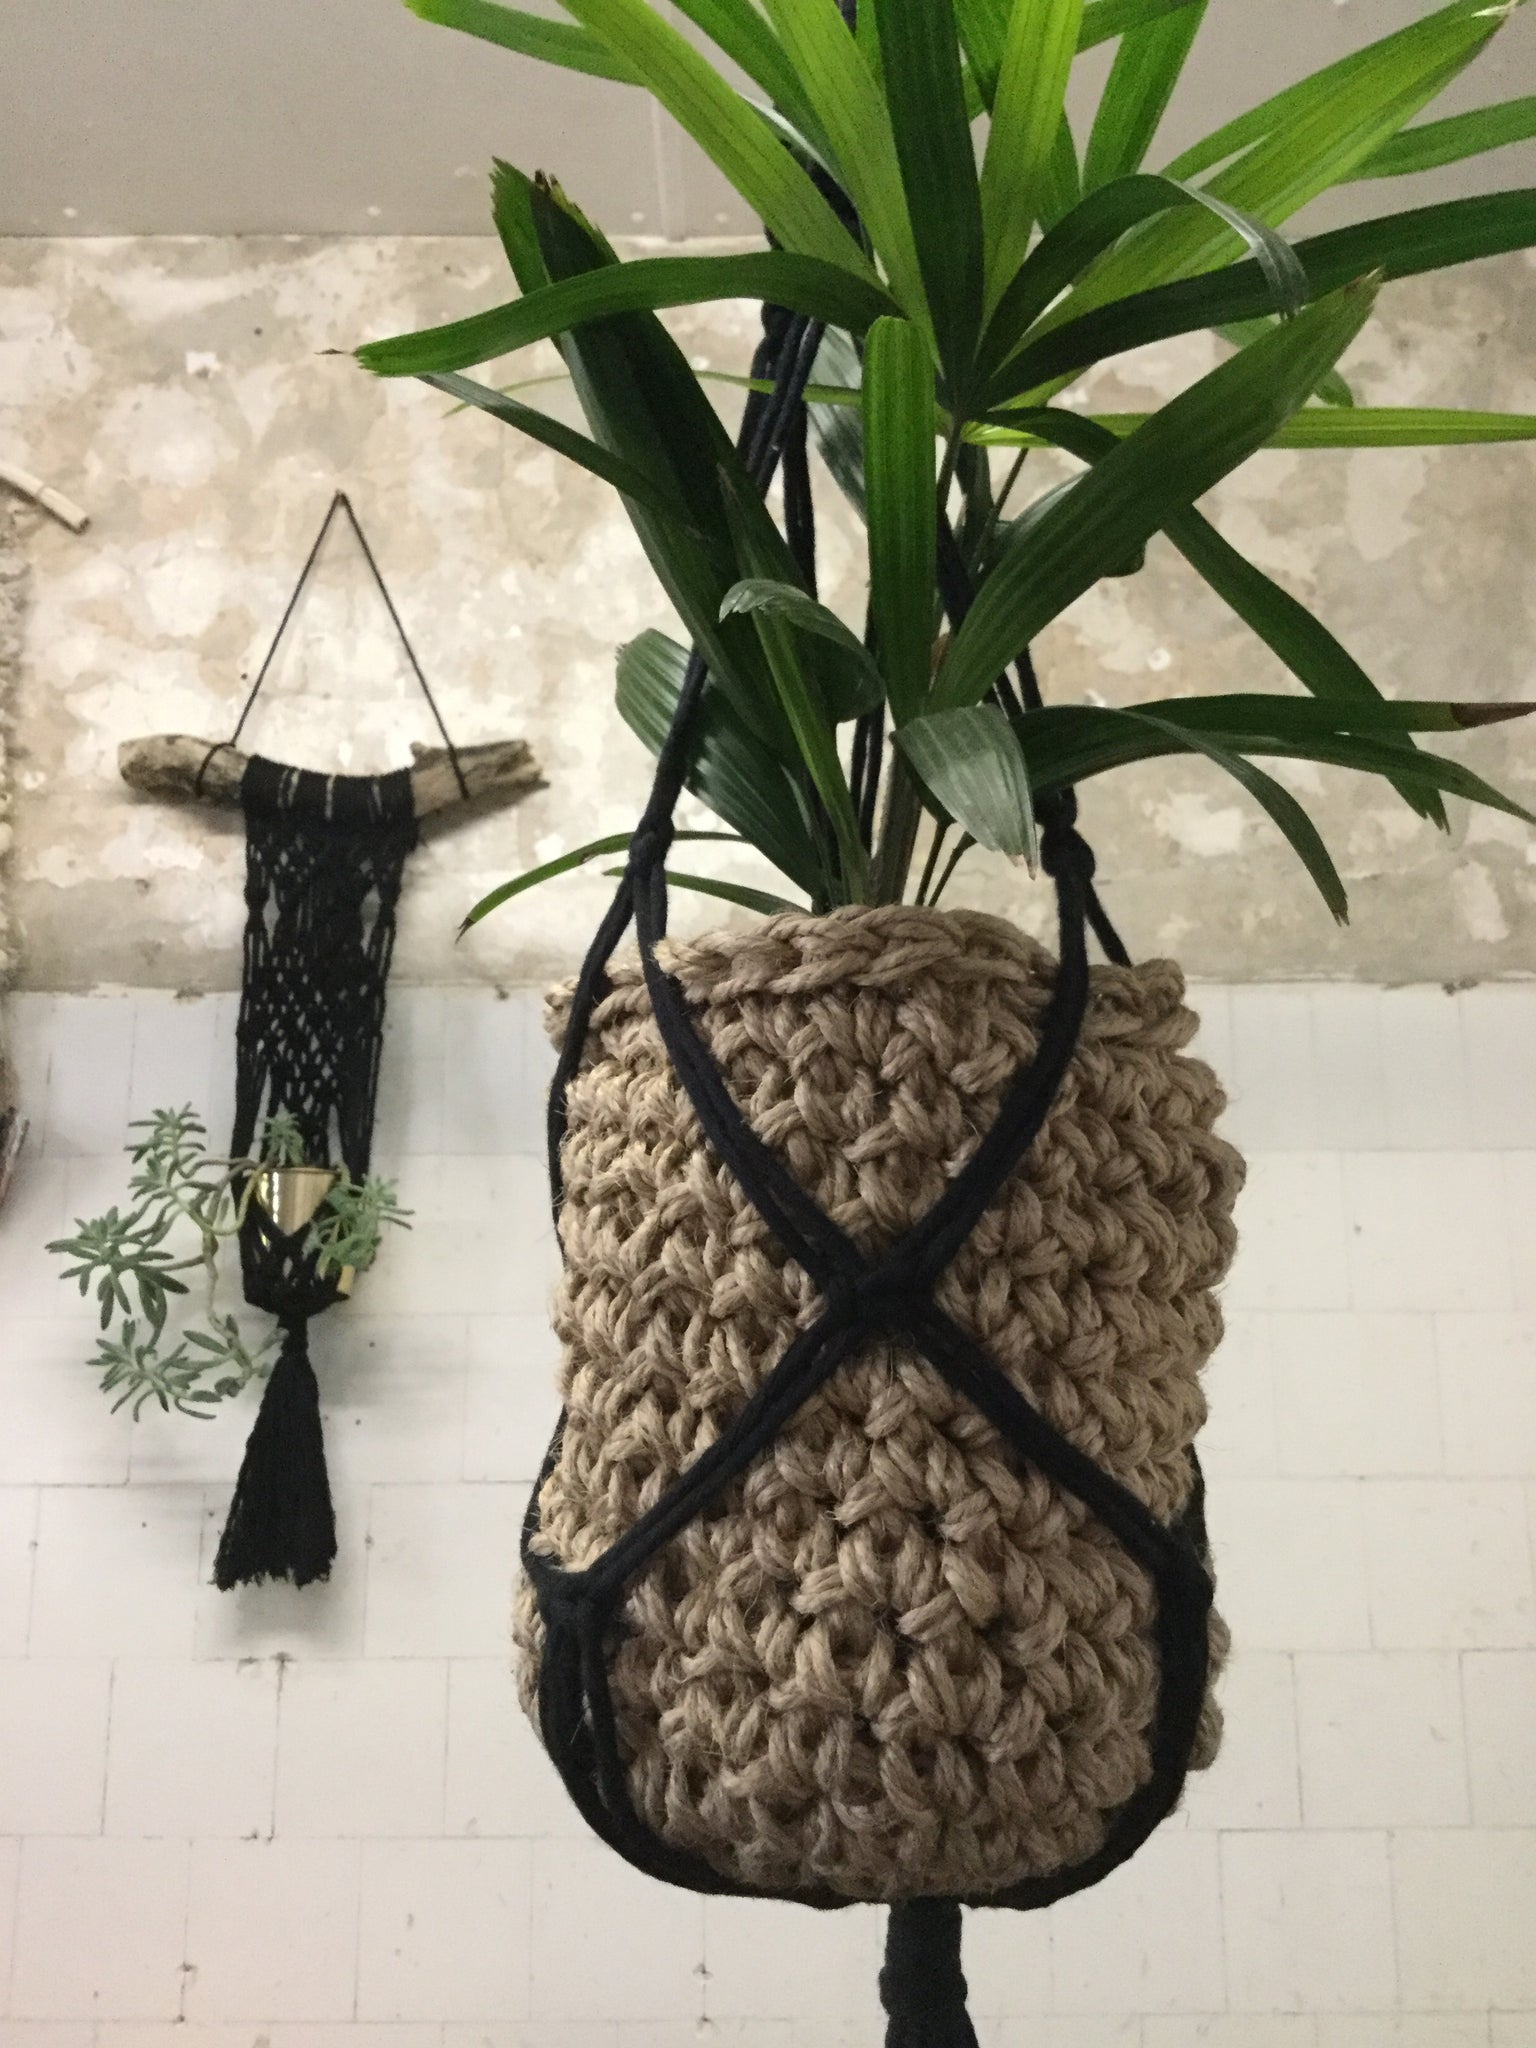 Macrame Wall Hanging & Plant Hanger - May 20